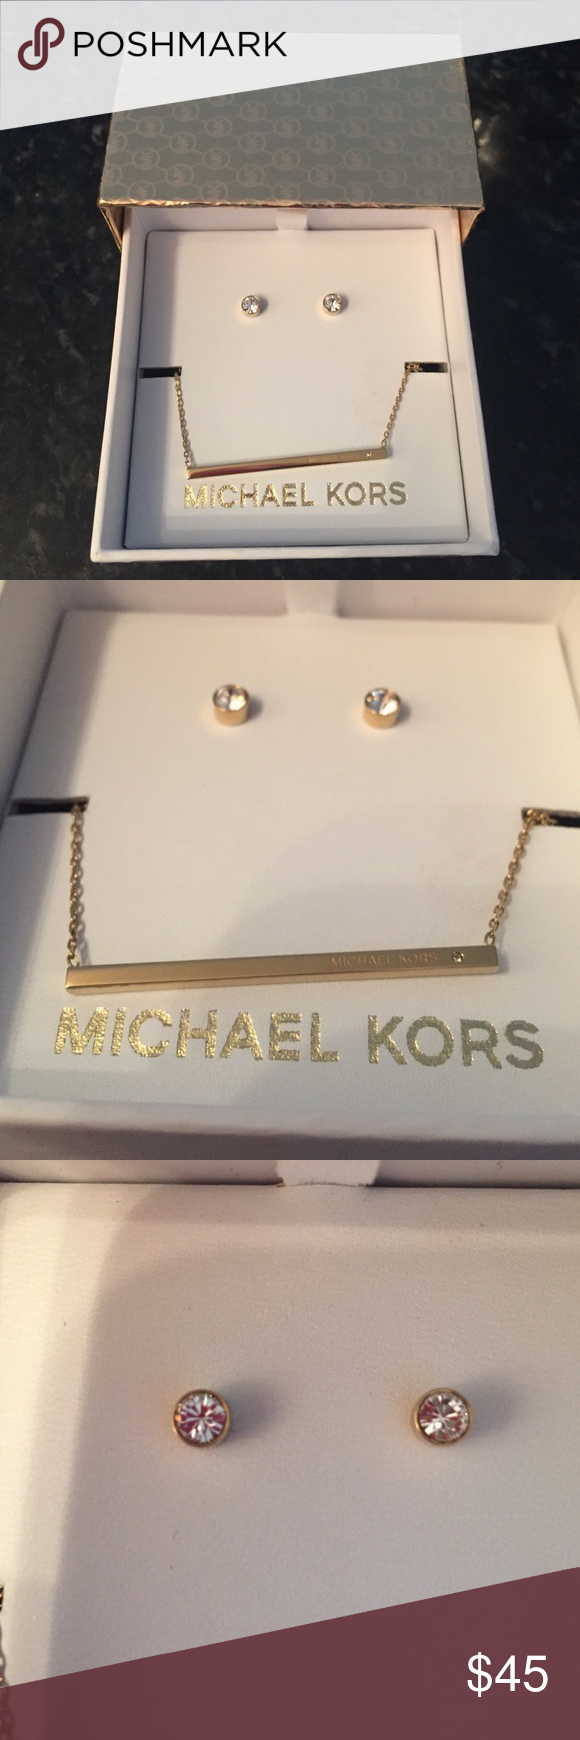 """MICHAEL KORS gold Bar Pendant & Stud Earrings Set BRAND NEW MK Bar Pendant and Stud Earrings Set Gold-Tone. Set includes necklace, earrings, & MK gift box. Lobster clasp closure on necklace. Post back closures; for pierced ears. Gold-tone plate metal/glass crystals. Approximate measurements: Necklace length: 16"""" + 2"""" extender Earring diameter: 5mm Michael Kors Jewelry Necklaces"""